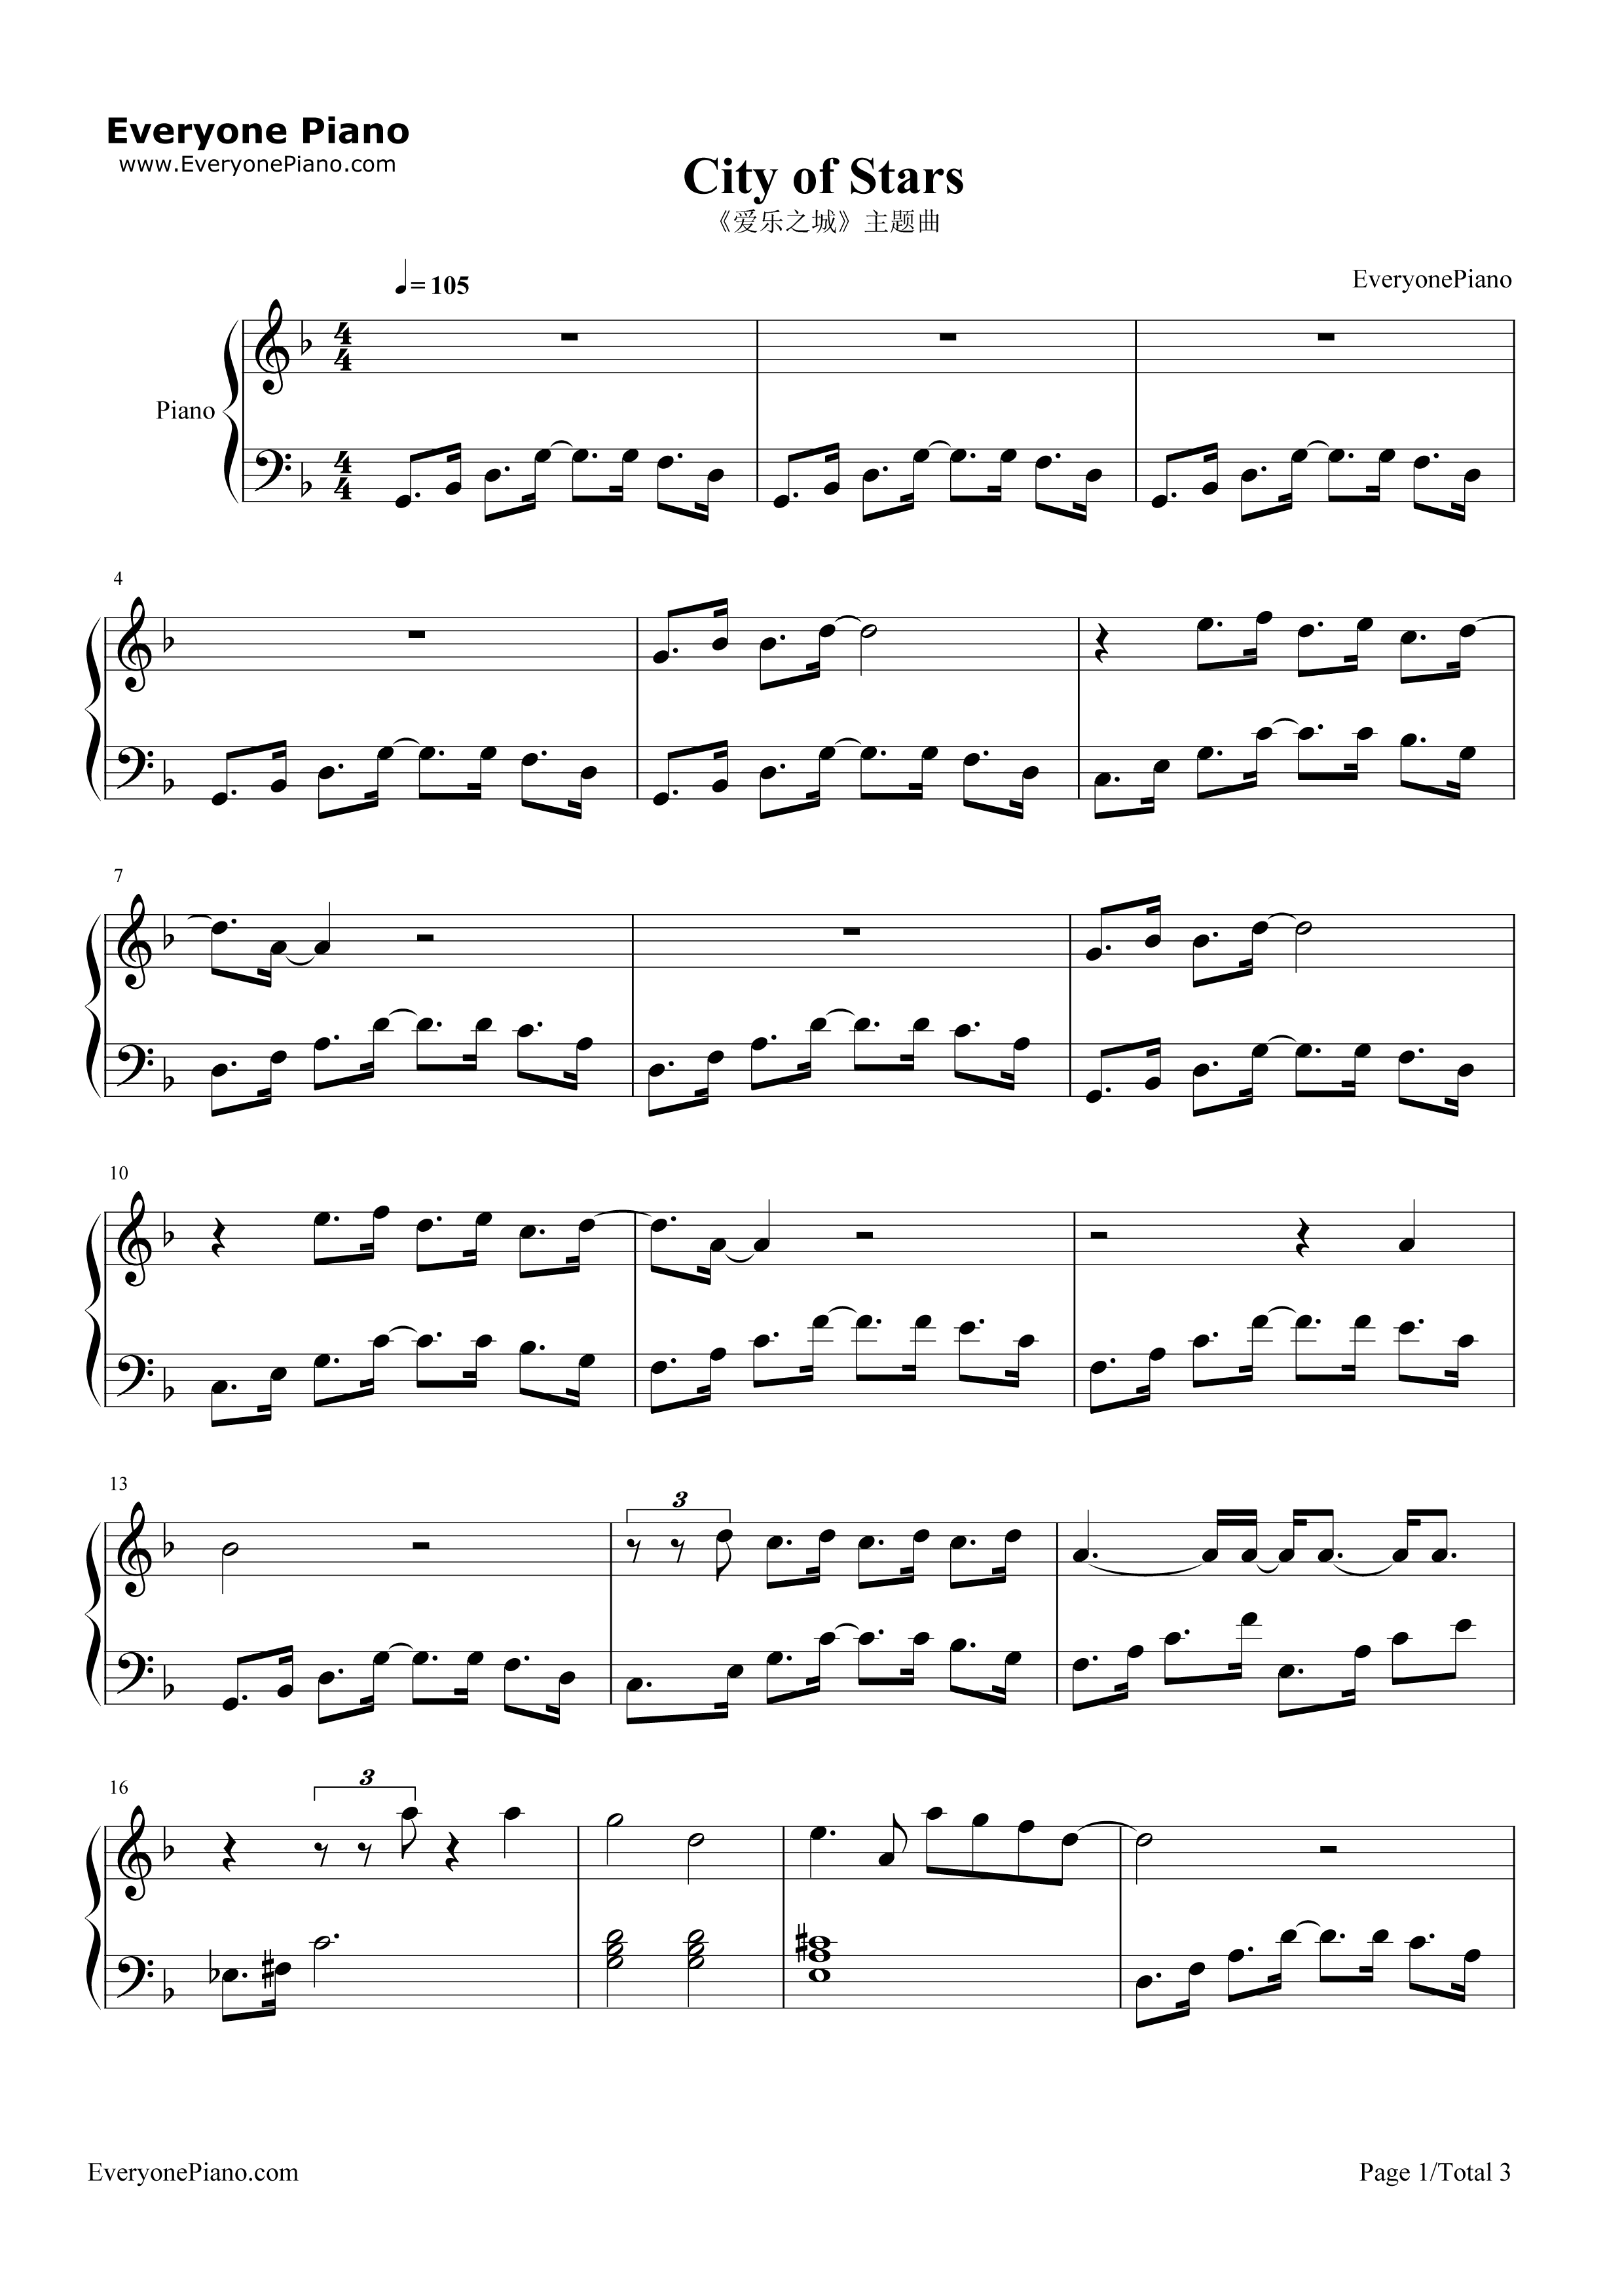 City of stars 1 free city of stars piano sheet music is provided for you city of stars is a song sung by ryan gosling and emma stone from the film la la land hexwebz Choice Image